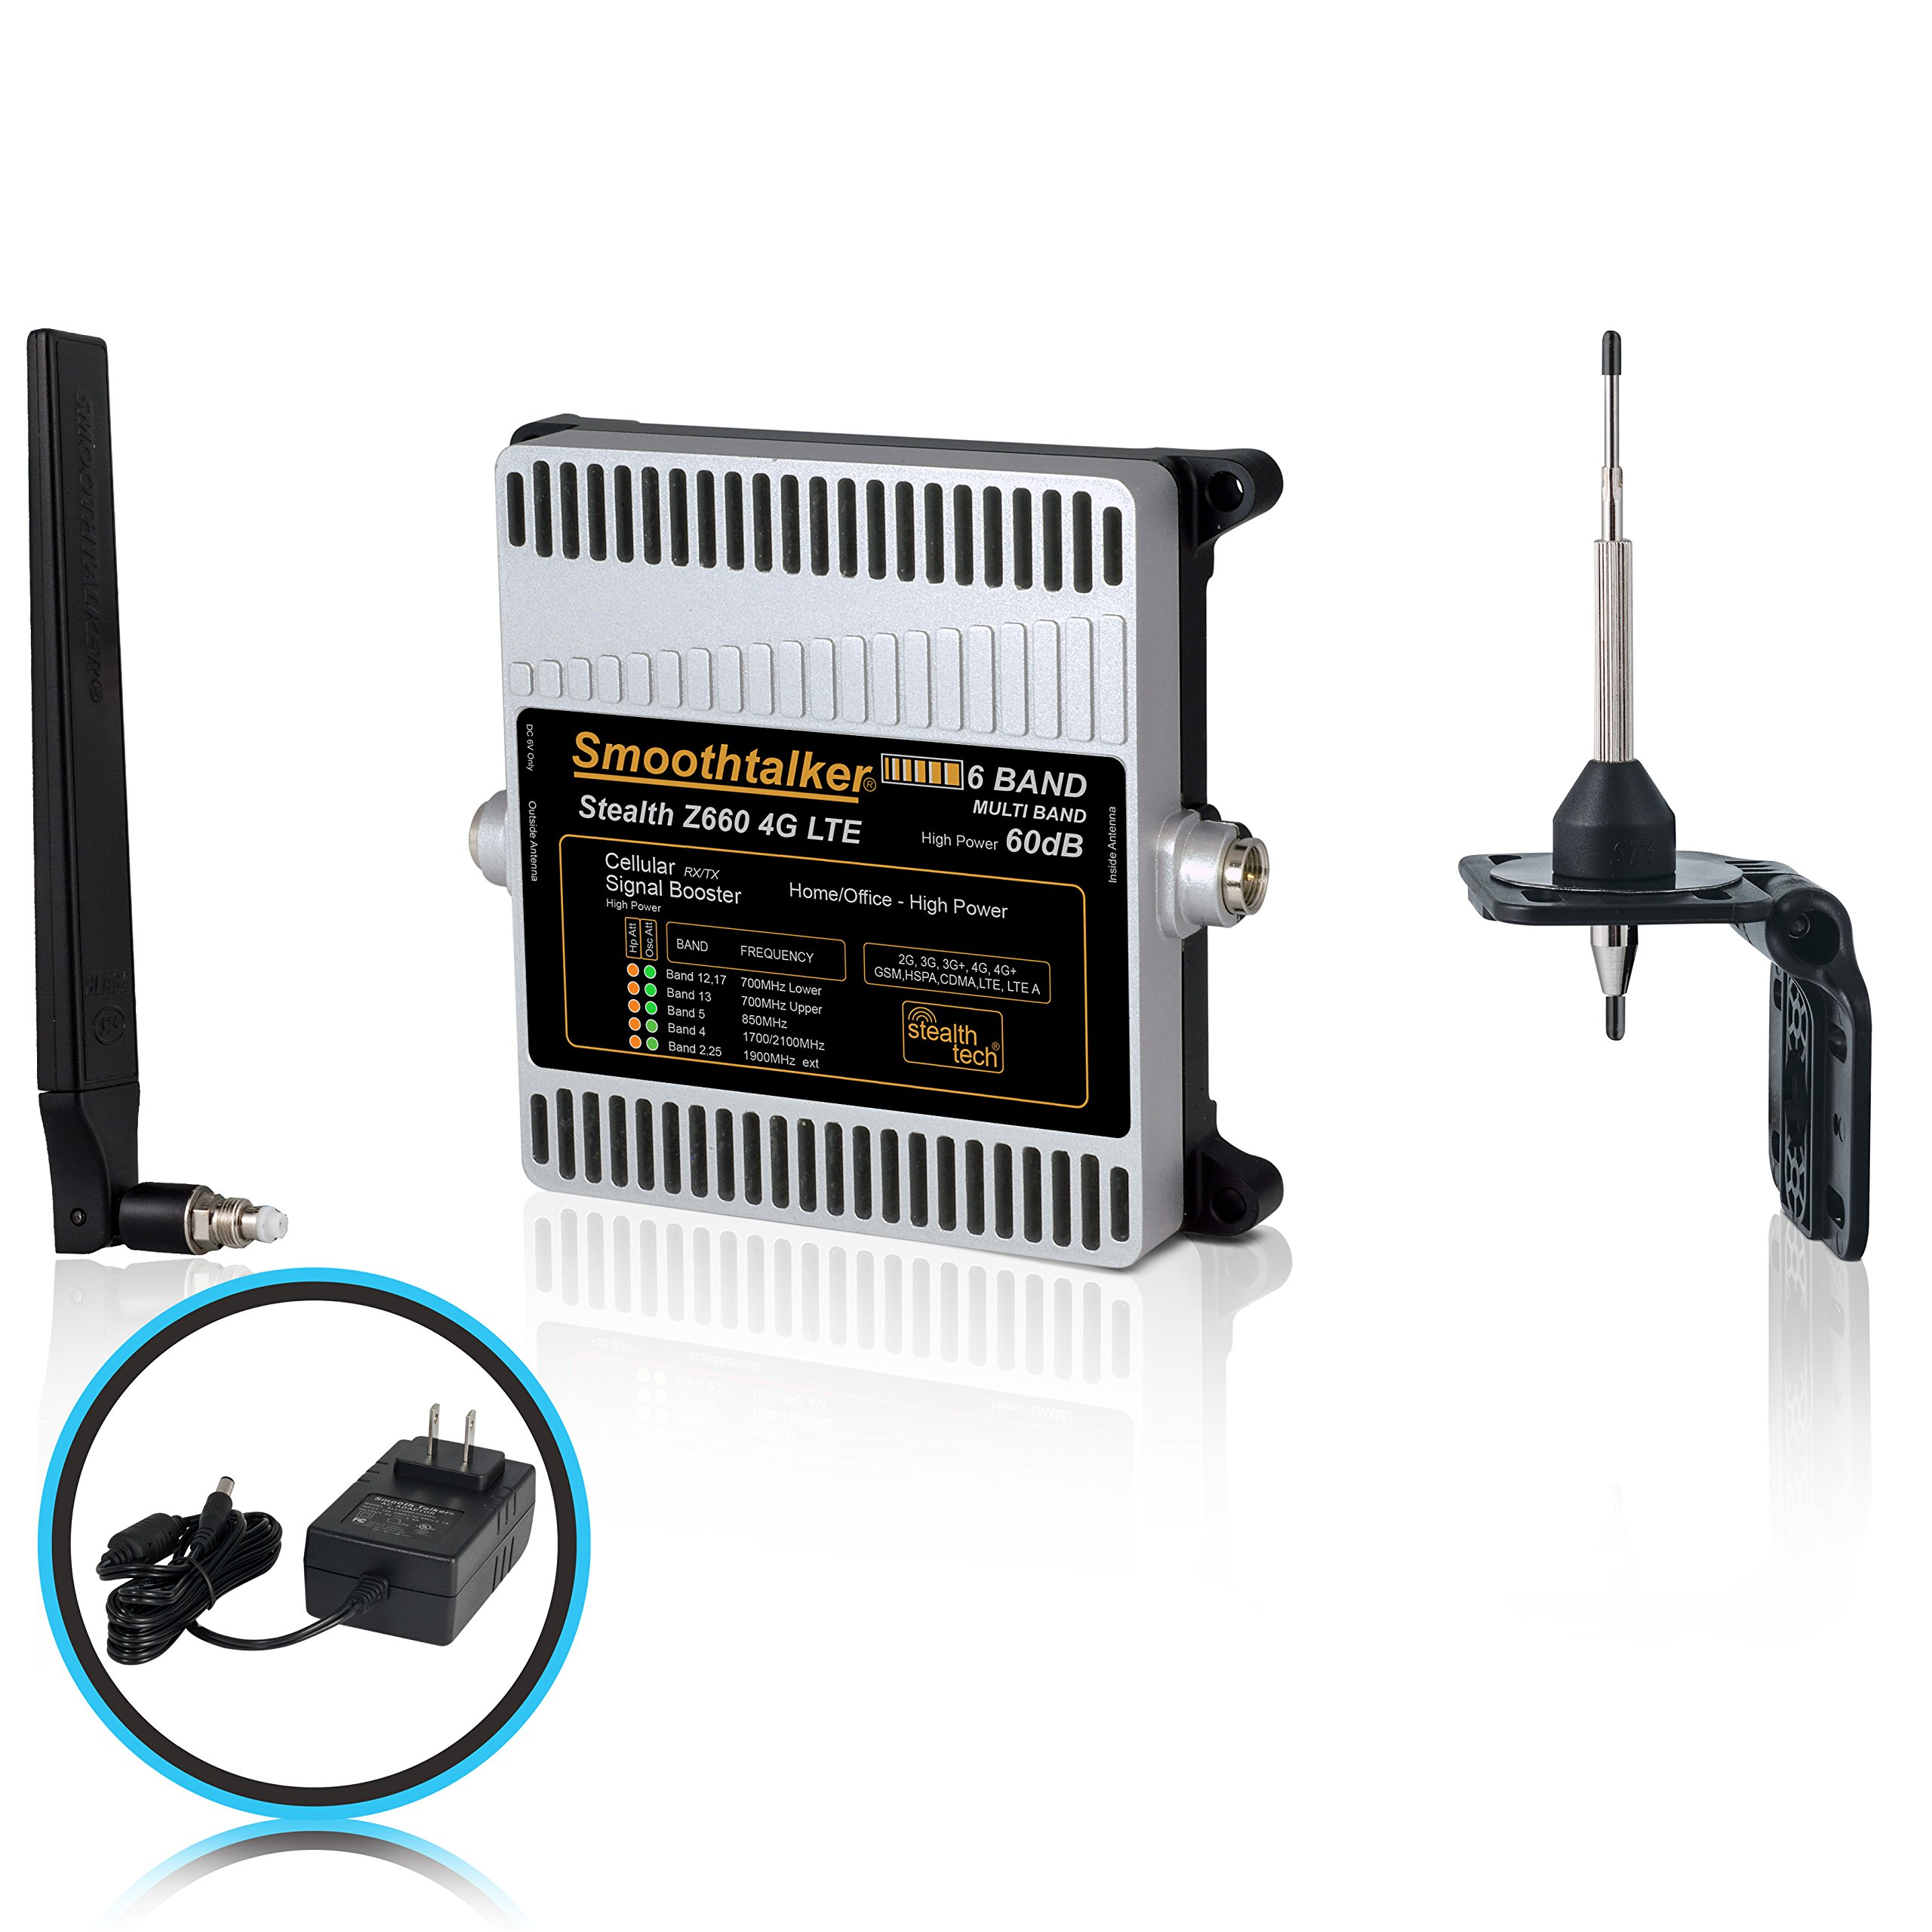 Smoothtalker Stealth Z6 60dB 4G LTE High Power 6 Band Cellular Signal Booster Kit. Covers up to 3500 sq. ft.